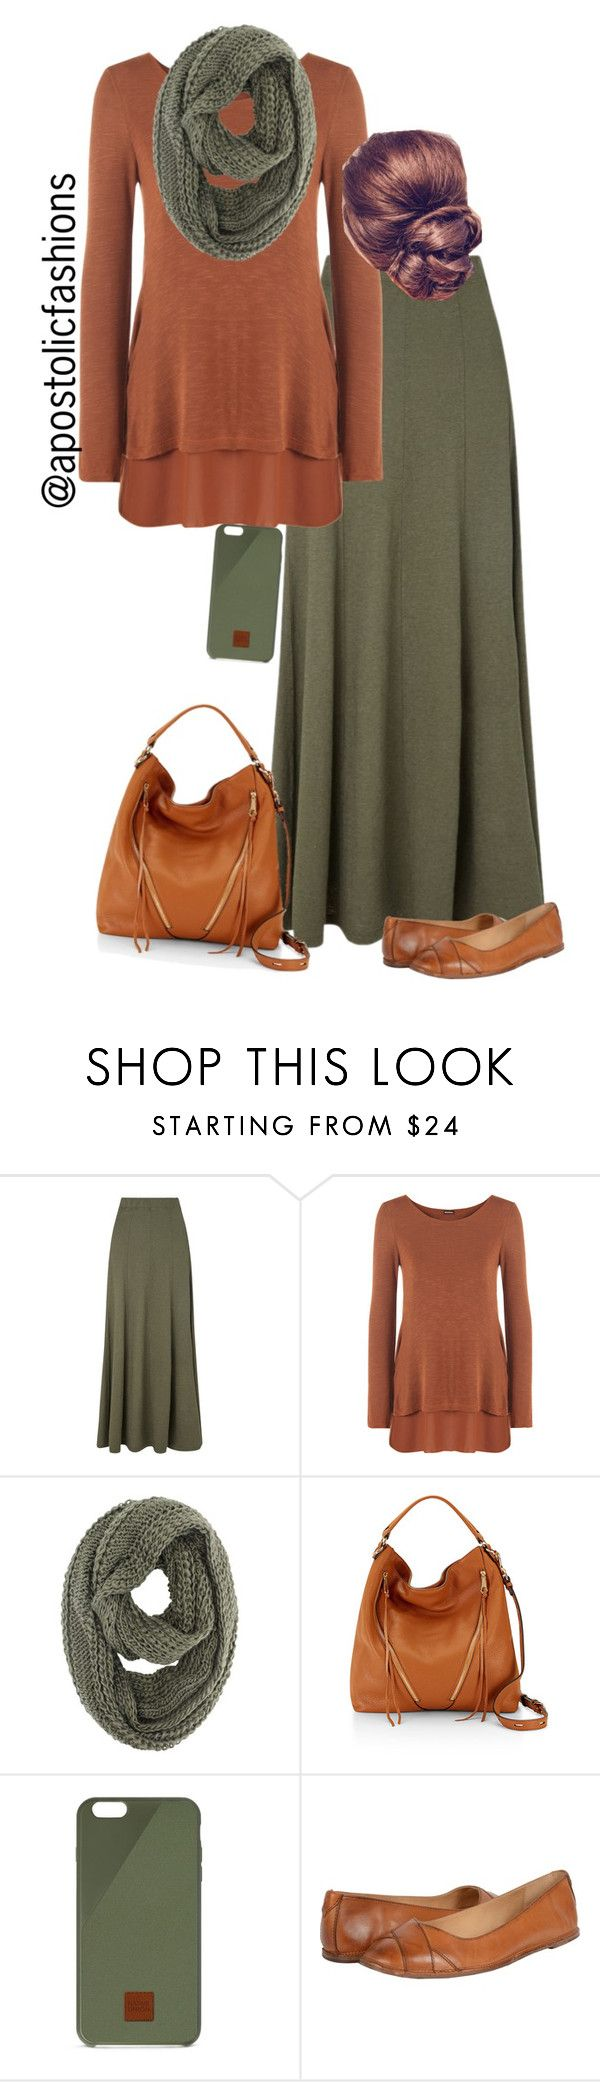 """Apostolic Fashions #968"" by apostolicfashions on Polyvore featuring EAST, WearAll, Rebecca Minkoff, Native Union and Frye"